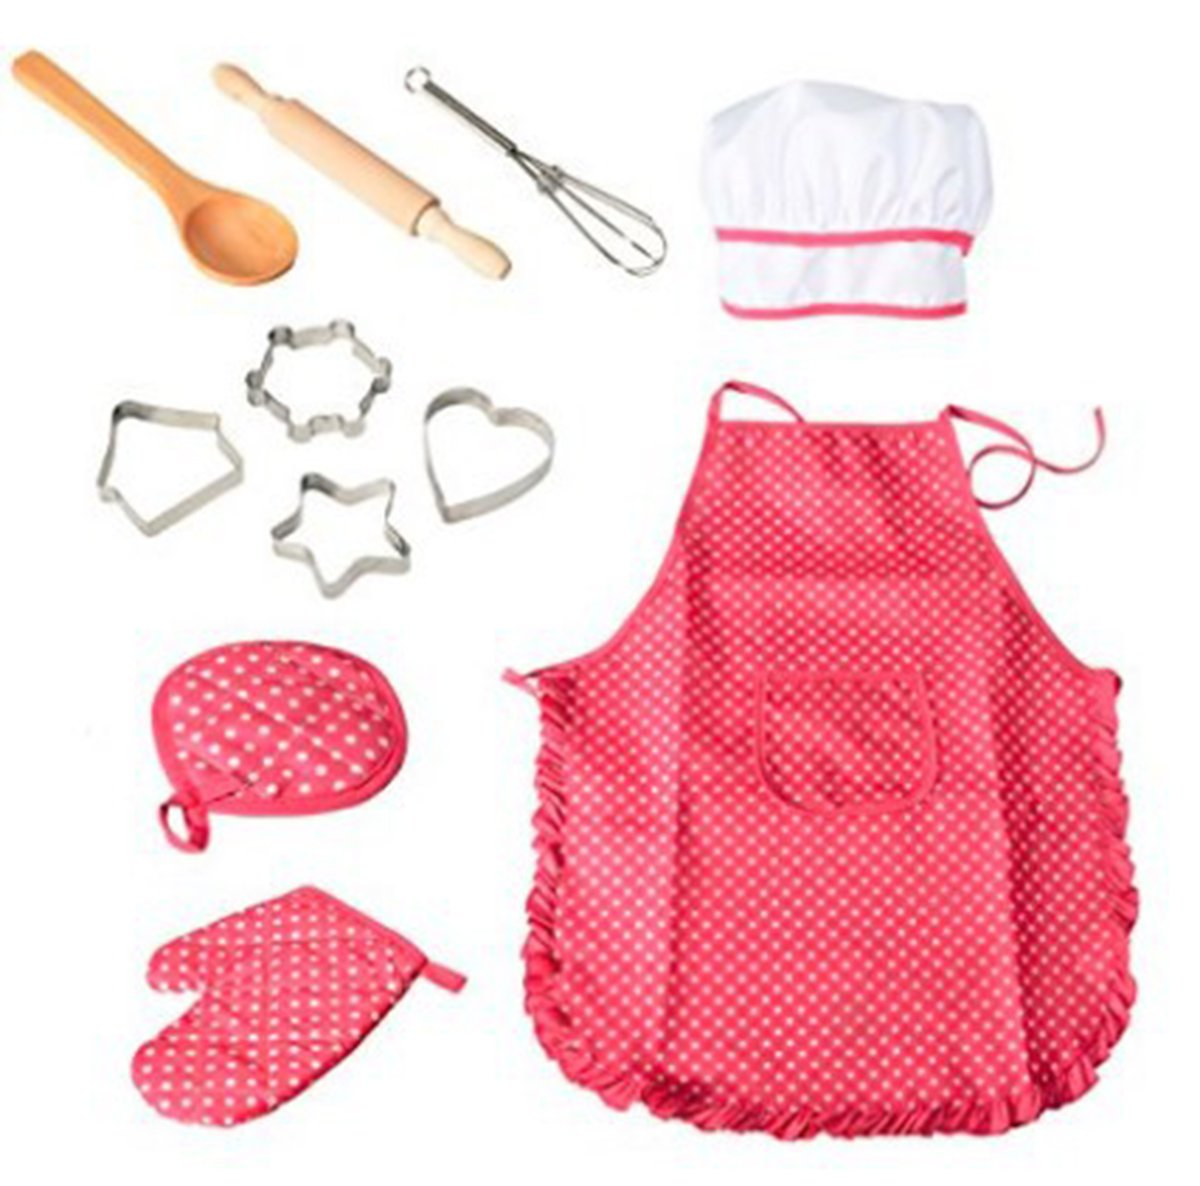 11 Pcs Kids Cooking and Baking Set Chef Set for Kids Kitchen Cooking Play Set with Apron for Girls, Chef Hat, and Cooking Mitt & Utensils for Toddler Career Role Play Children Pretend Play Seilent